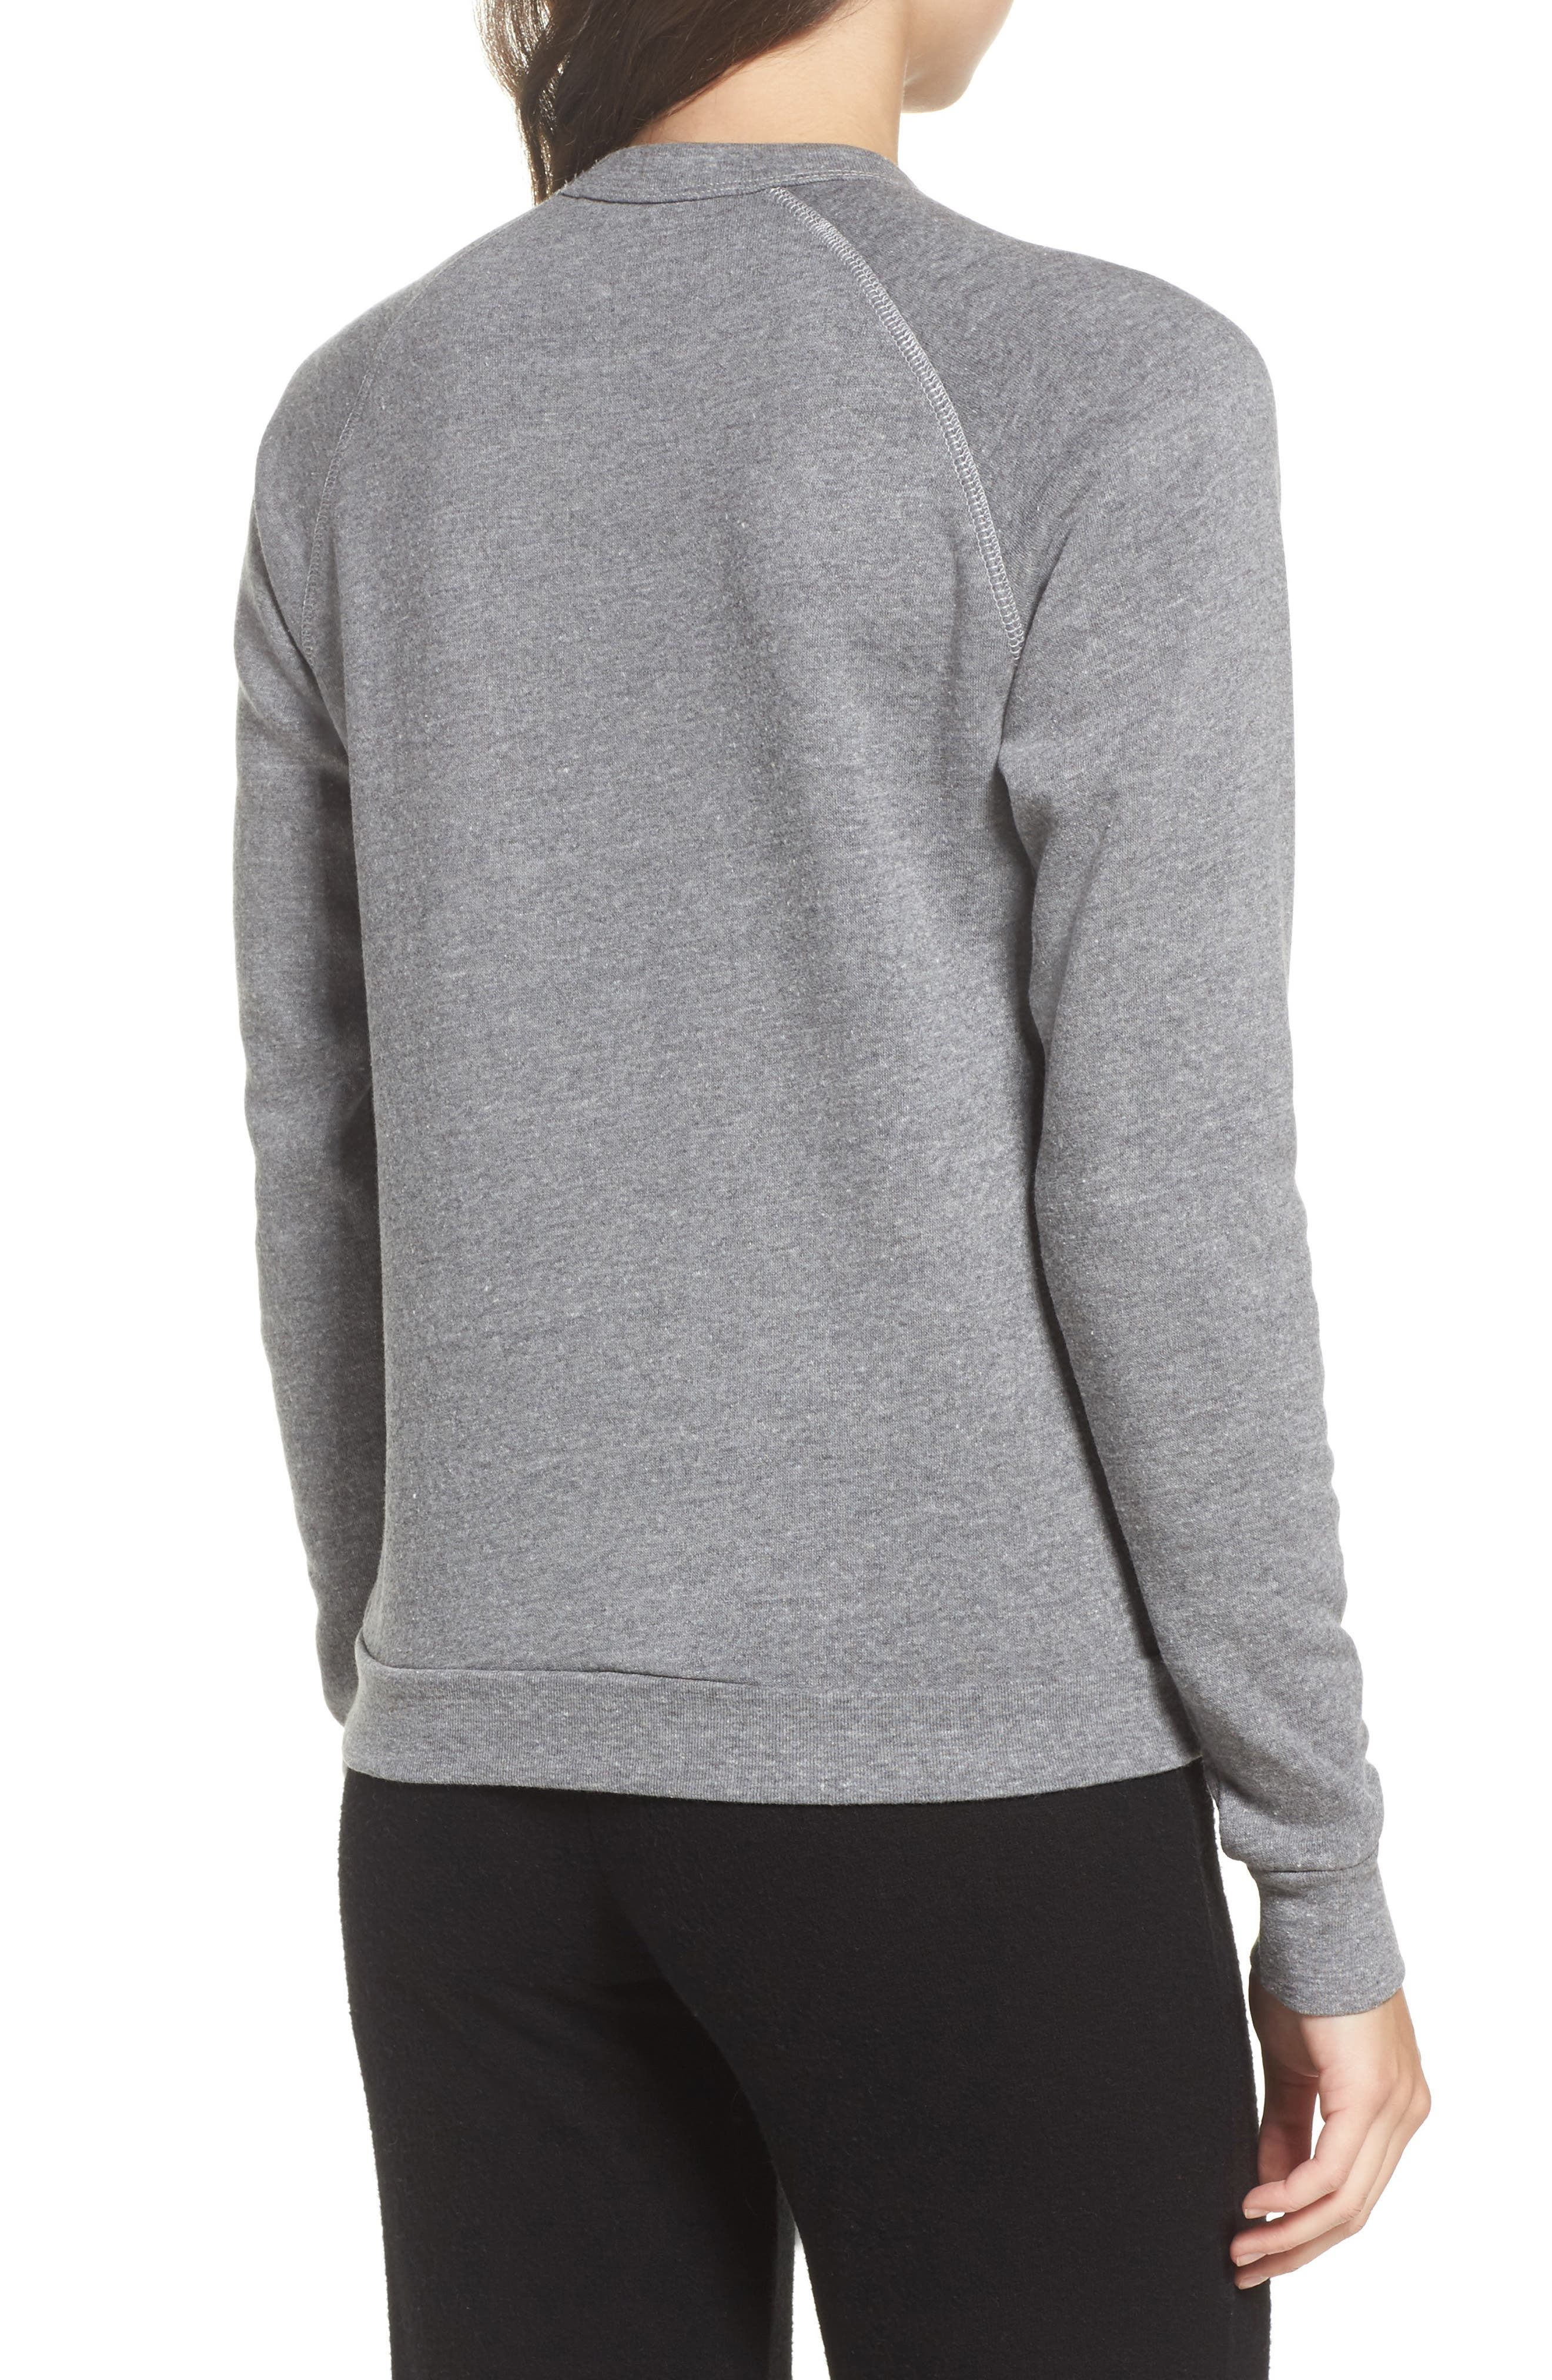 Say You'll Be Wine French Terry Sweatshirt,                             Alternate thumbnail 2, color,                             021